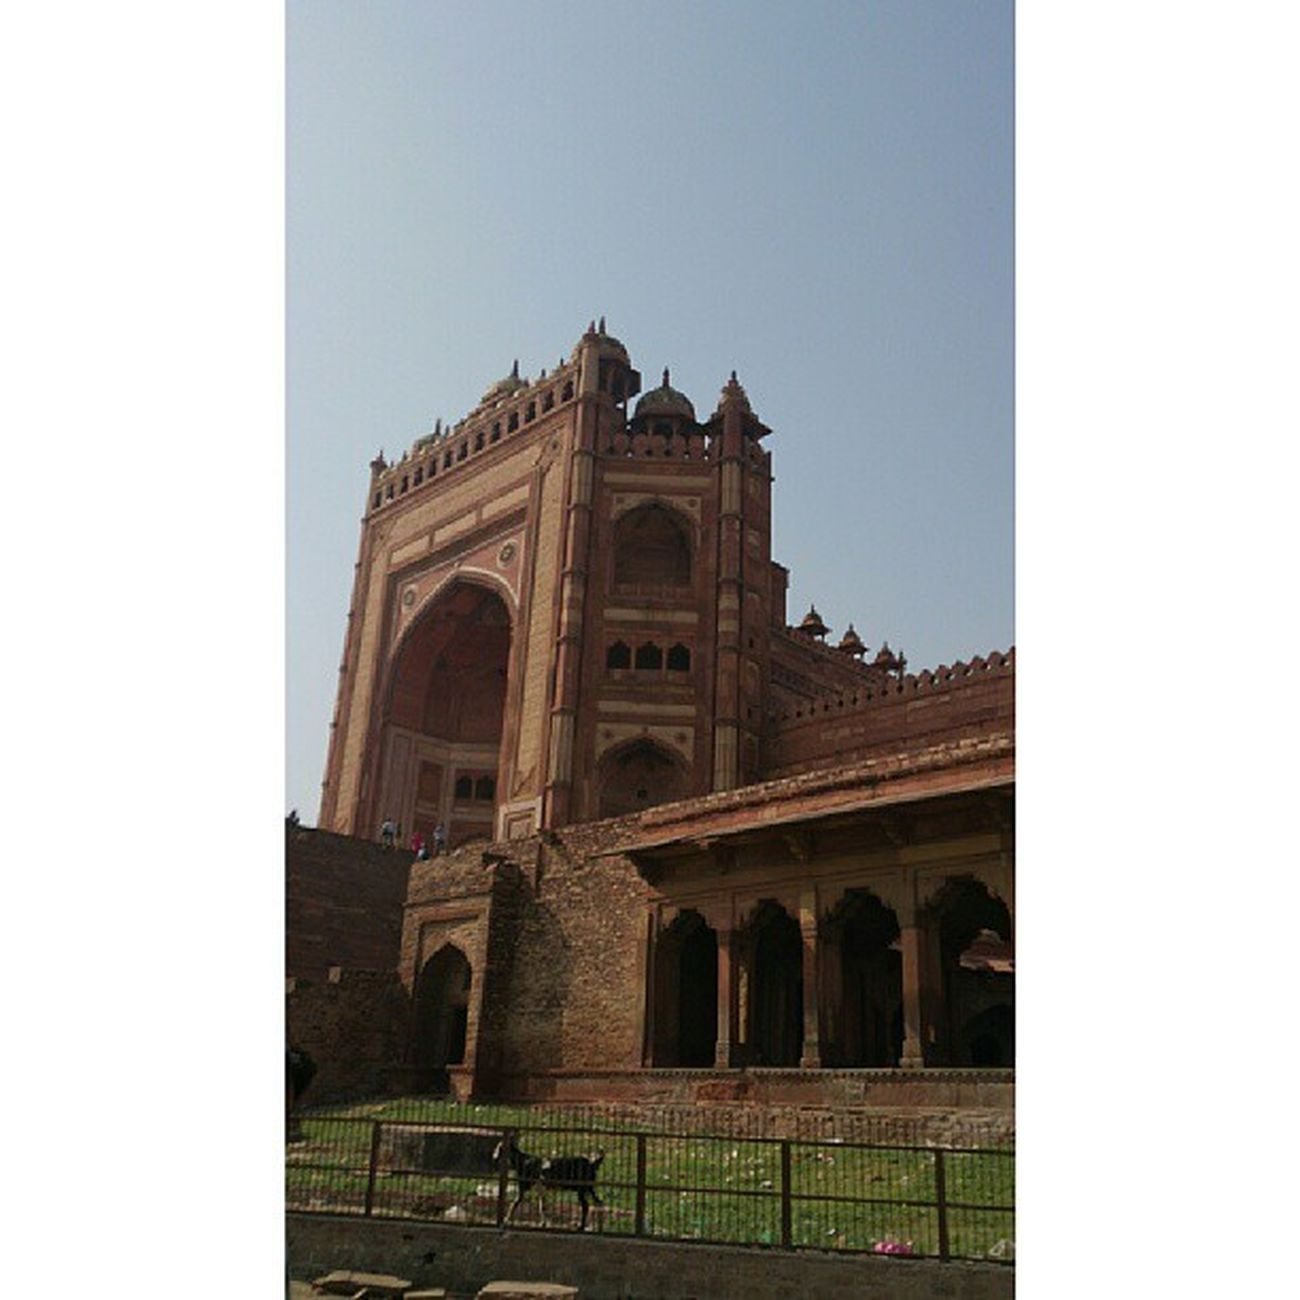 BulanddarwazaFatehpursikri Agra India Asias Longest Door Mughal History Victory Dargah People Faith Forts